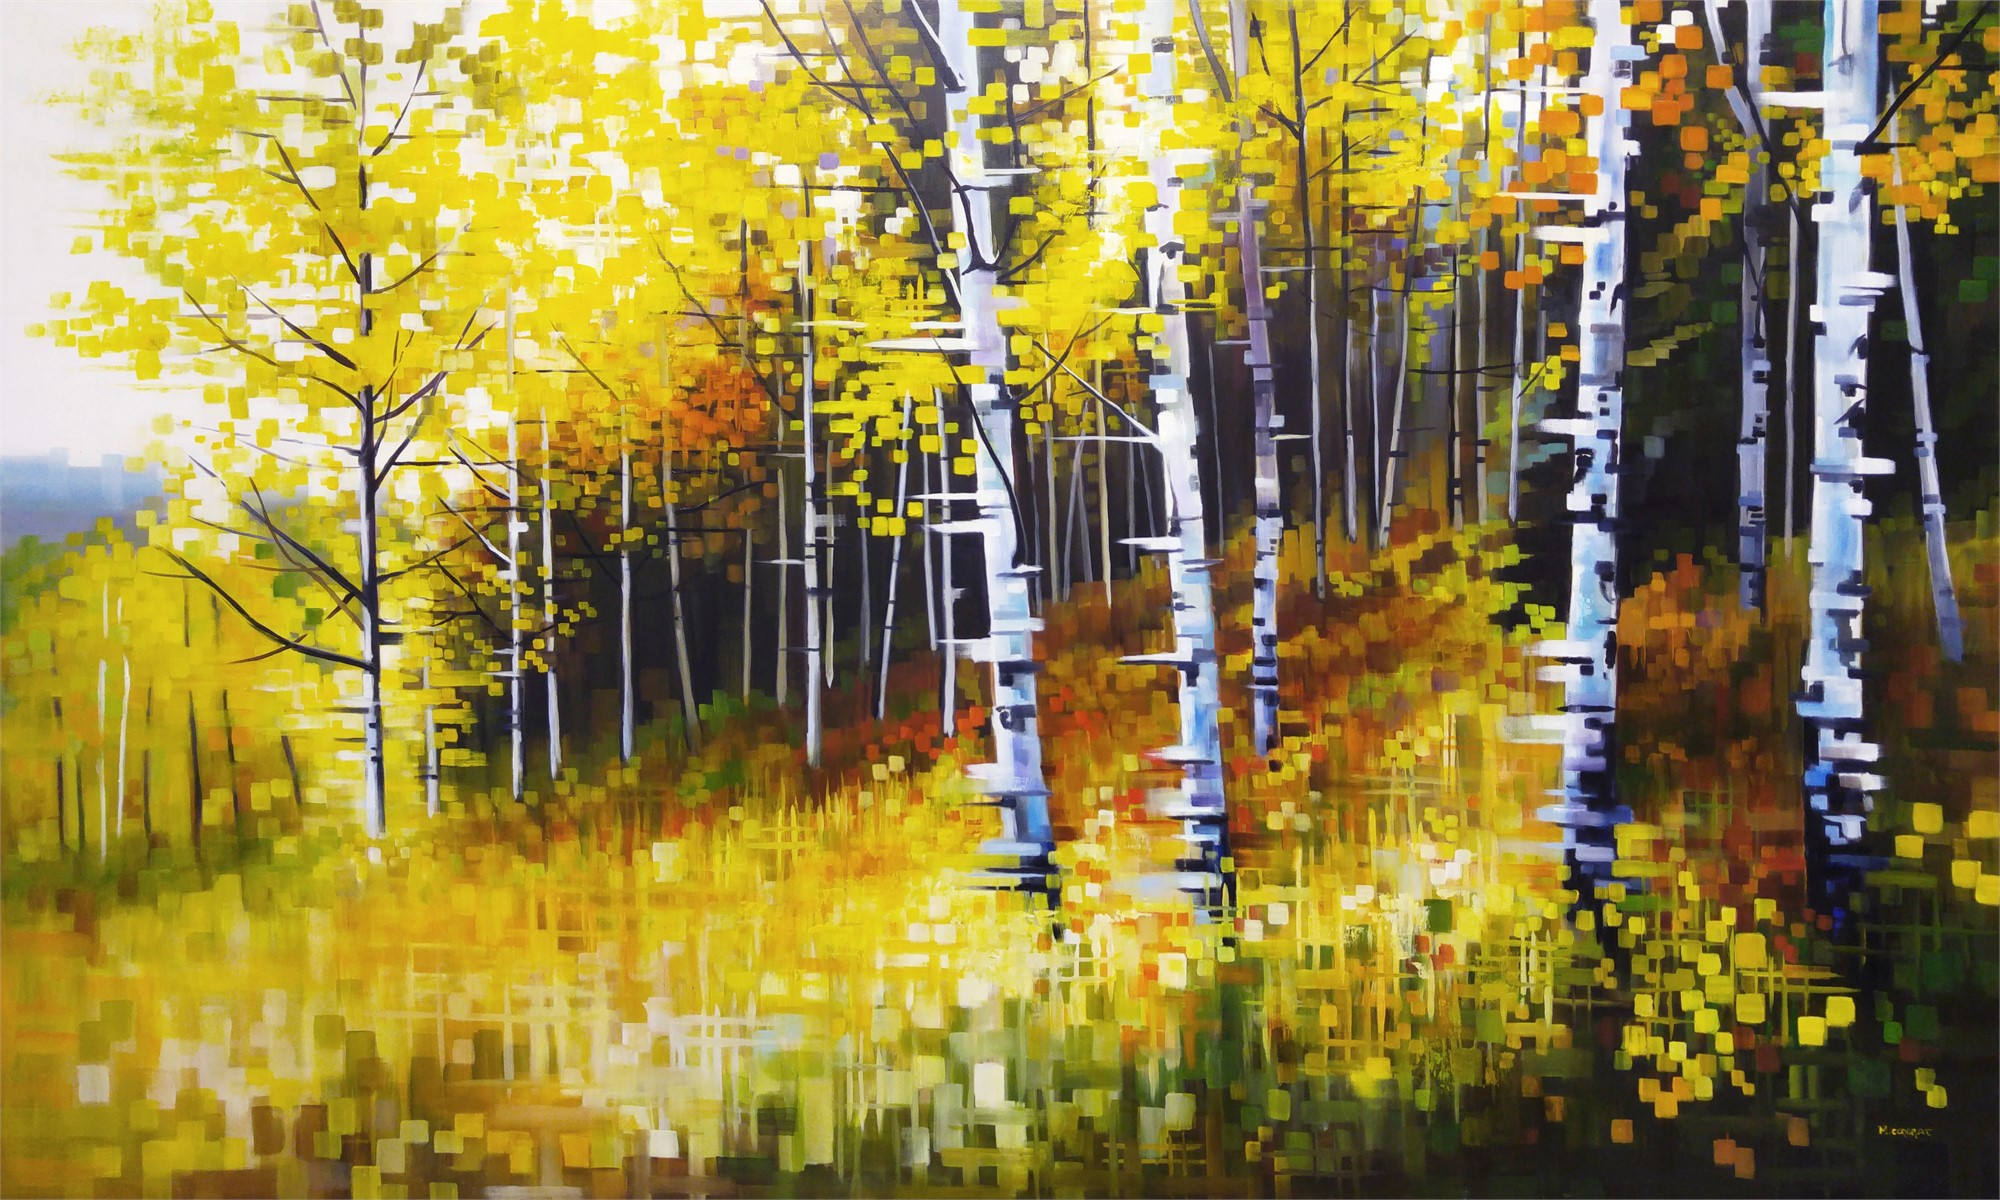 Autumn in the Foothills by Michelle Condrat